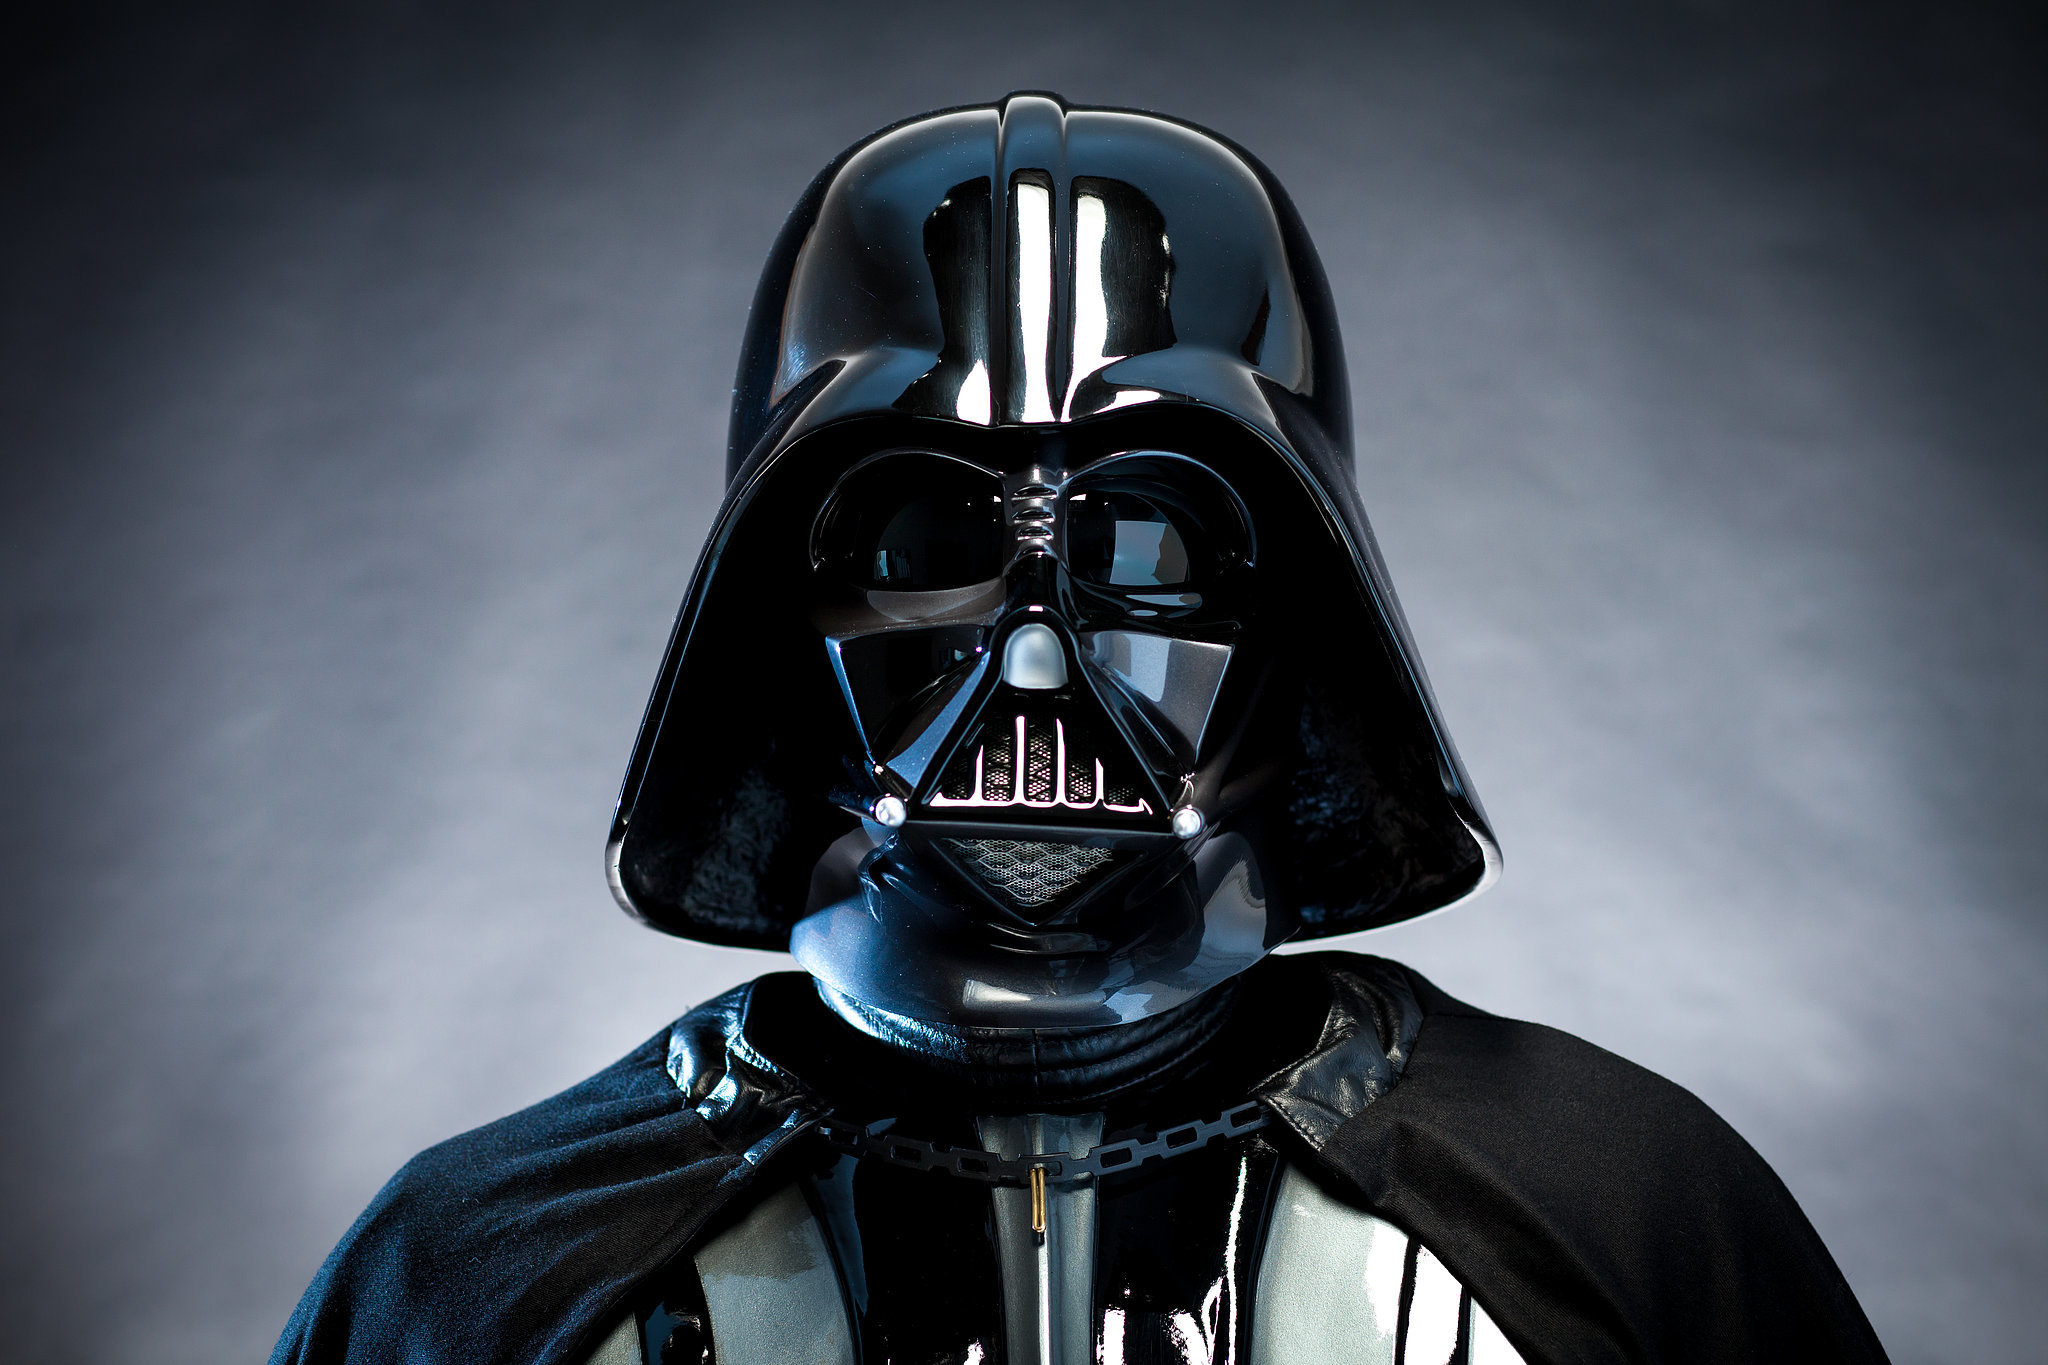 GLOBALO CLIP: 6 LIFE LESSONS FROM STAR WARS' DARTH VADER ...